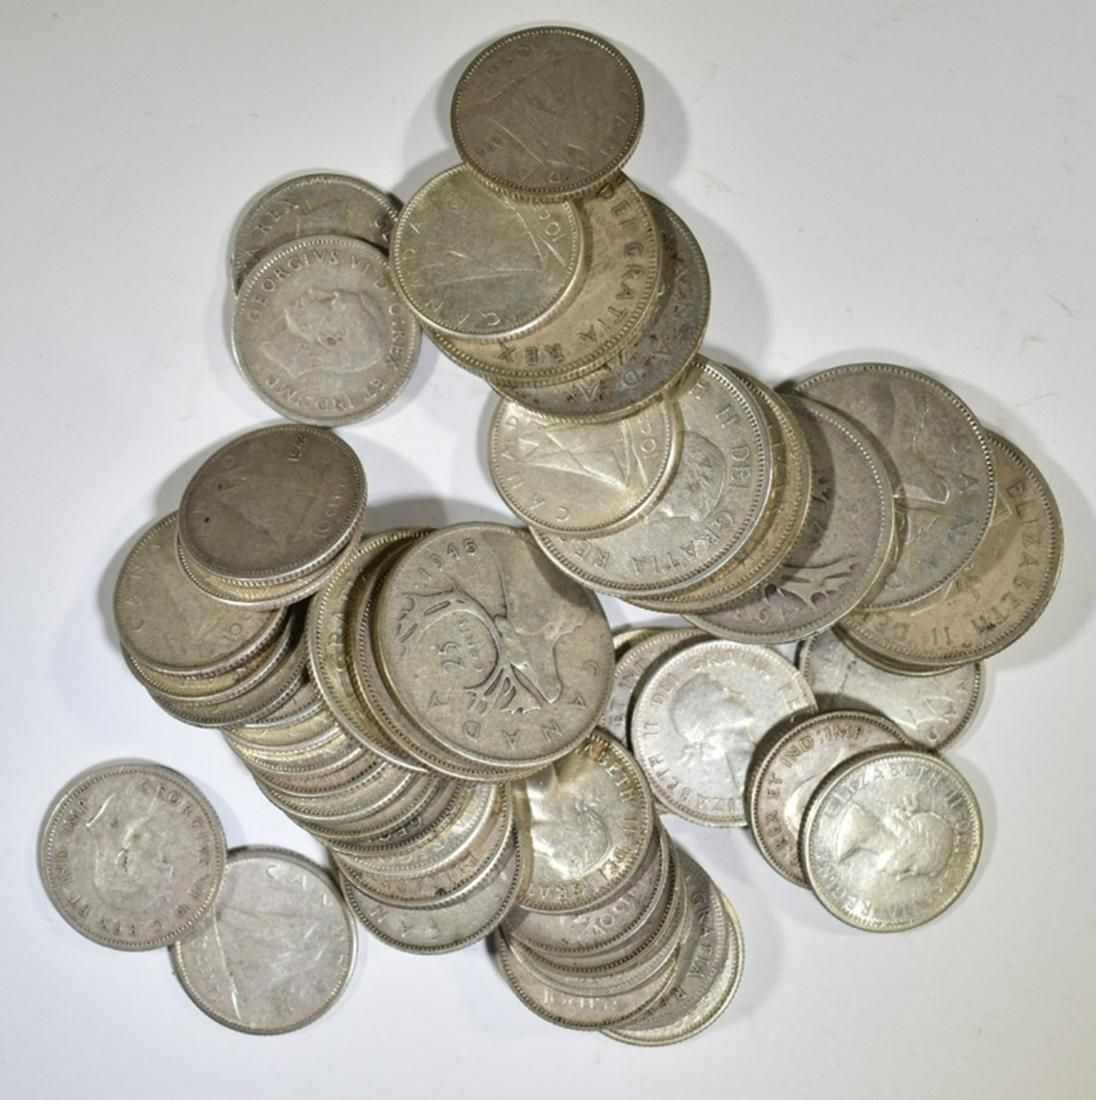 $6.40 FACE VALUE CANADIAN SILVER COINS